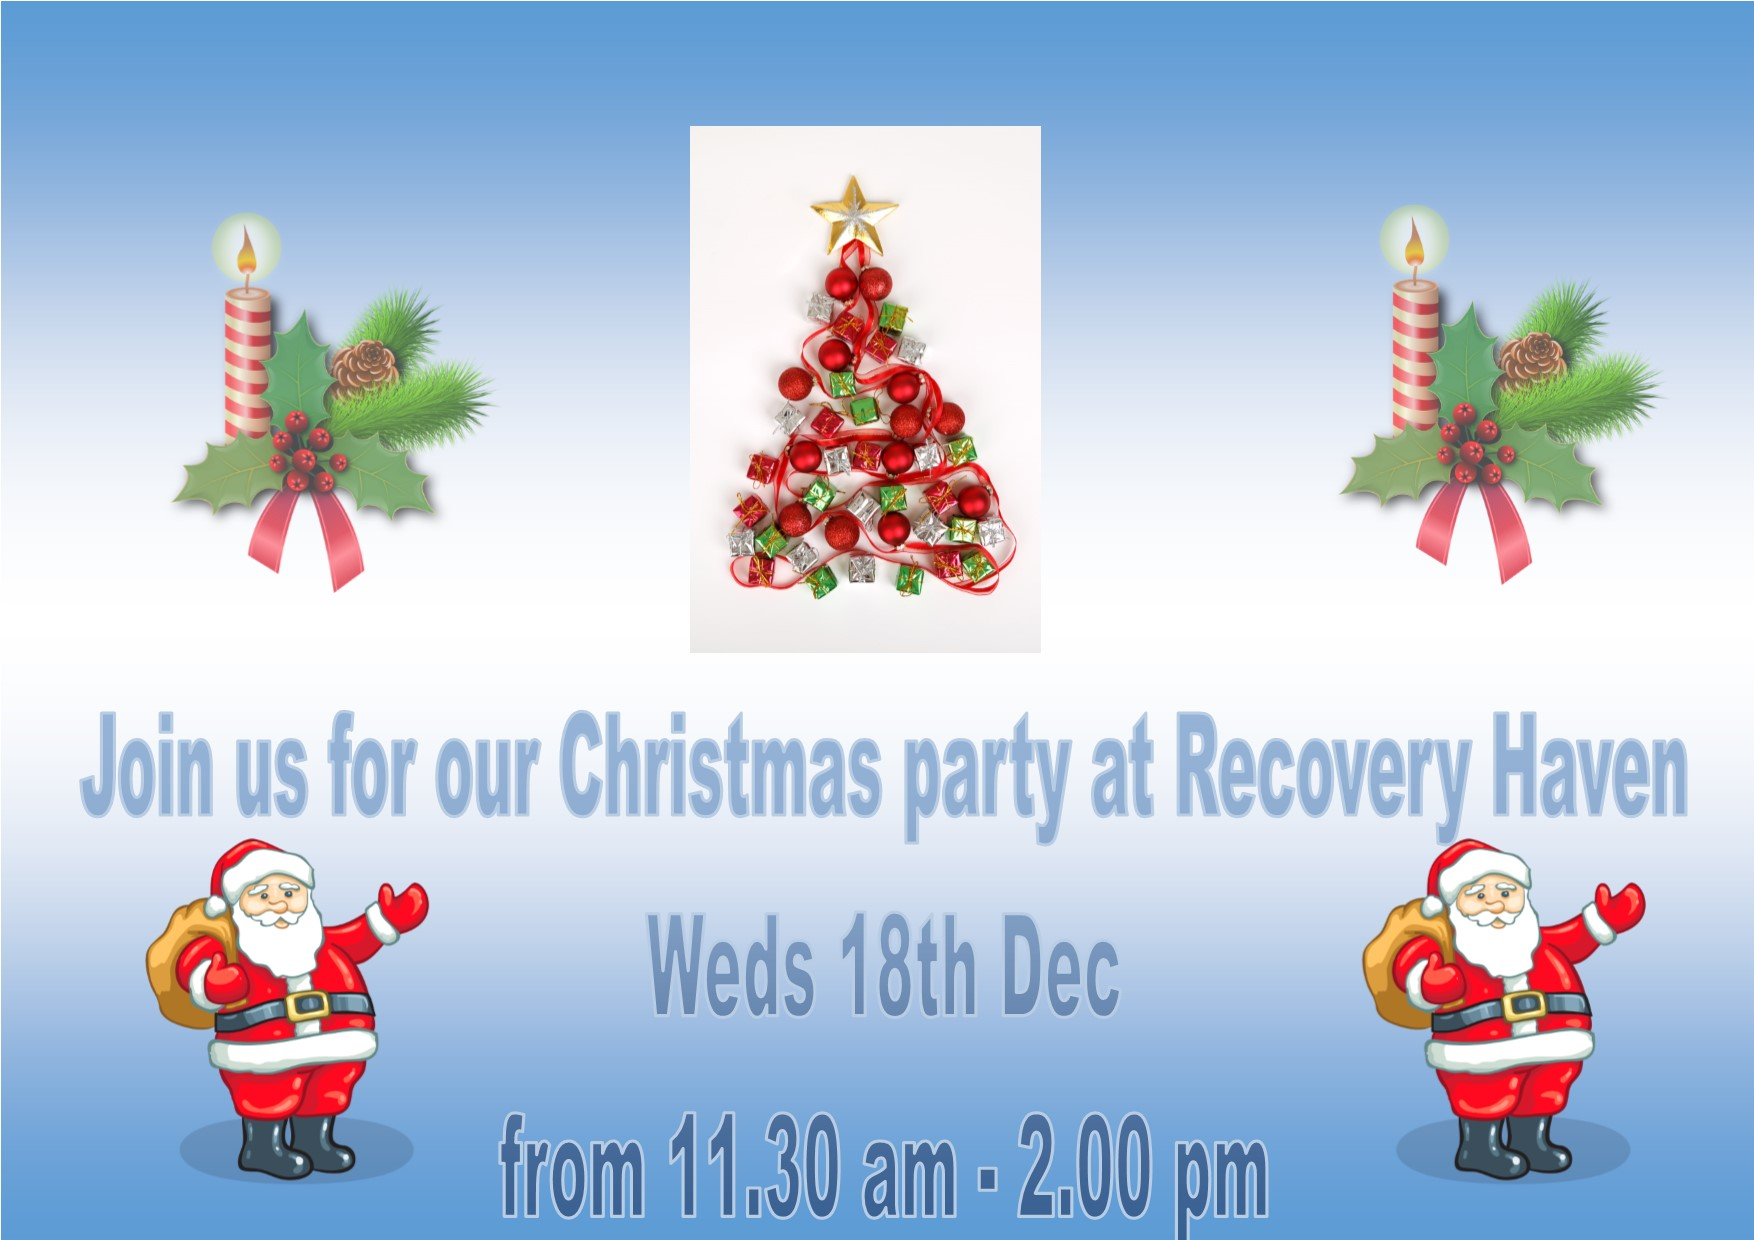 Visitors Christmas party